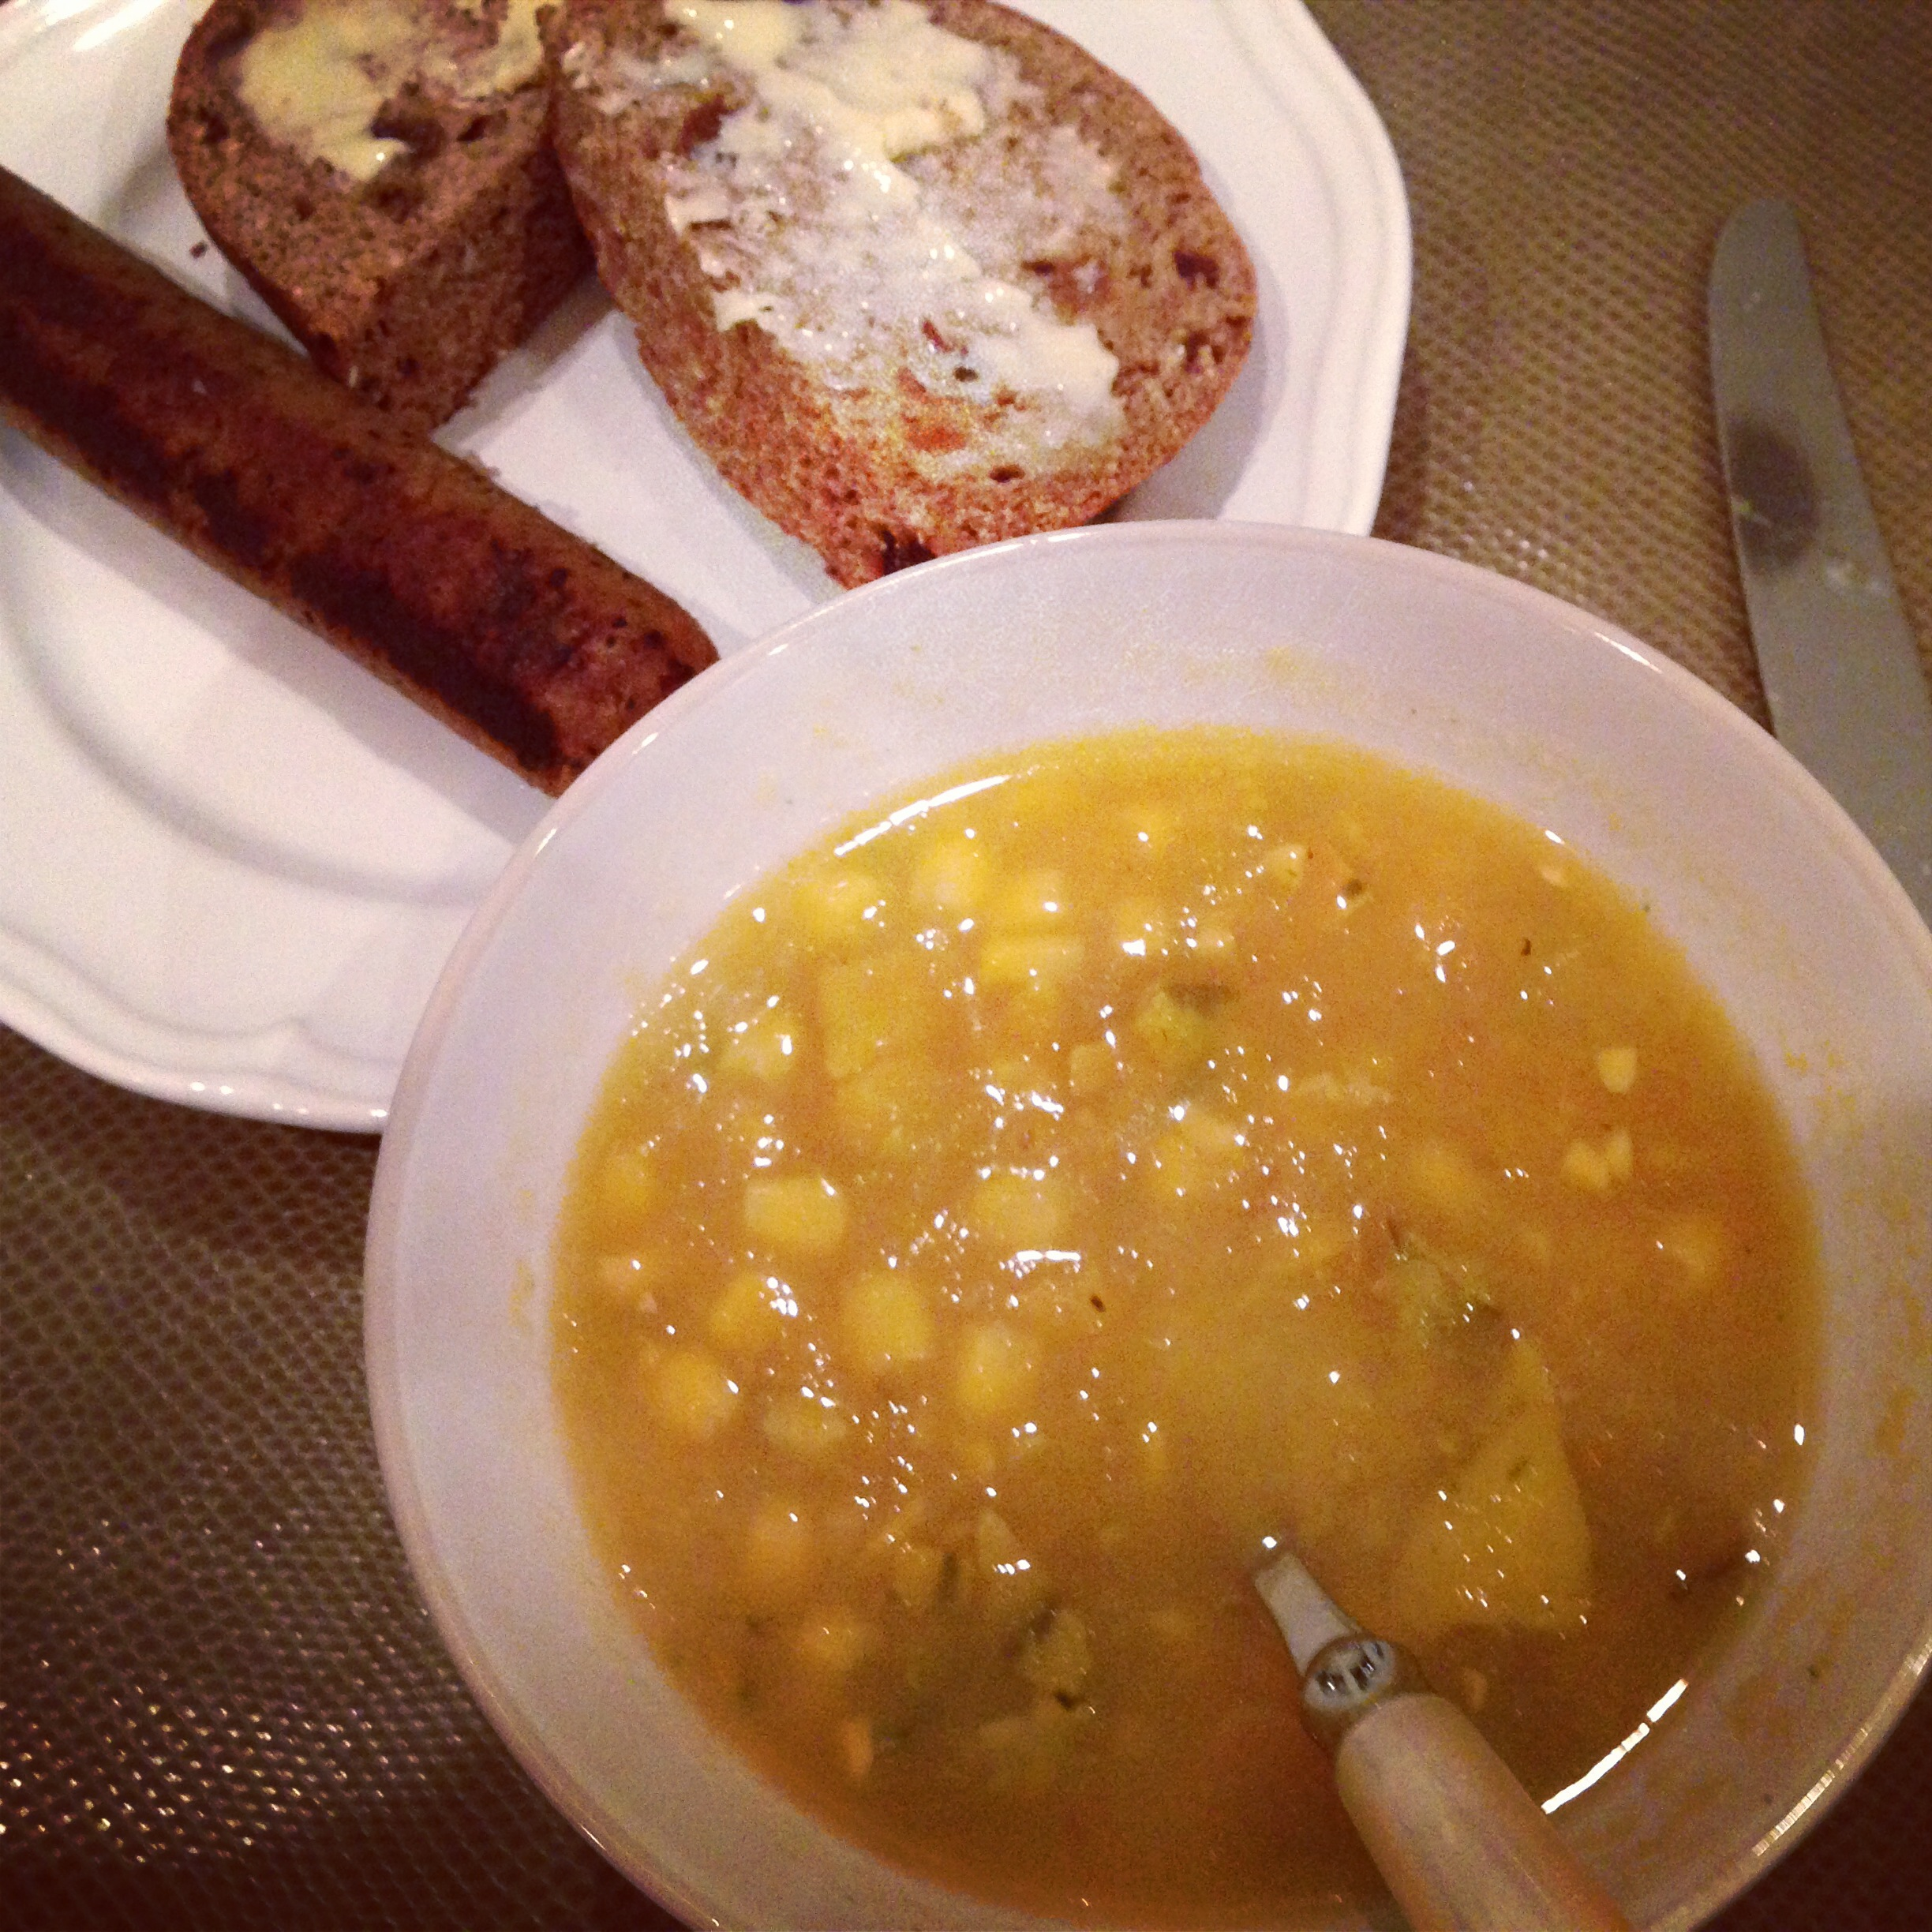 (A healing vegan dinner of corn bisque, Field Roast, and Sprouted bread with Earth Balance.)